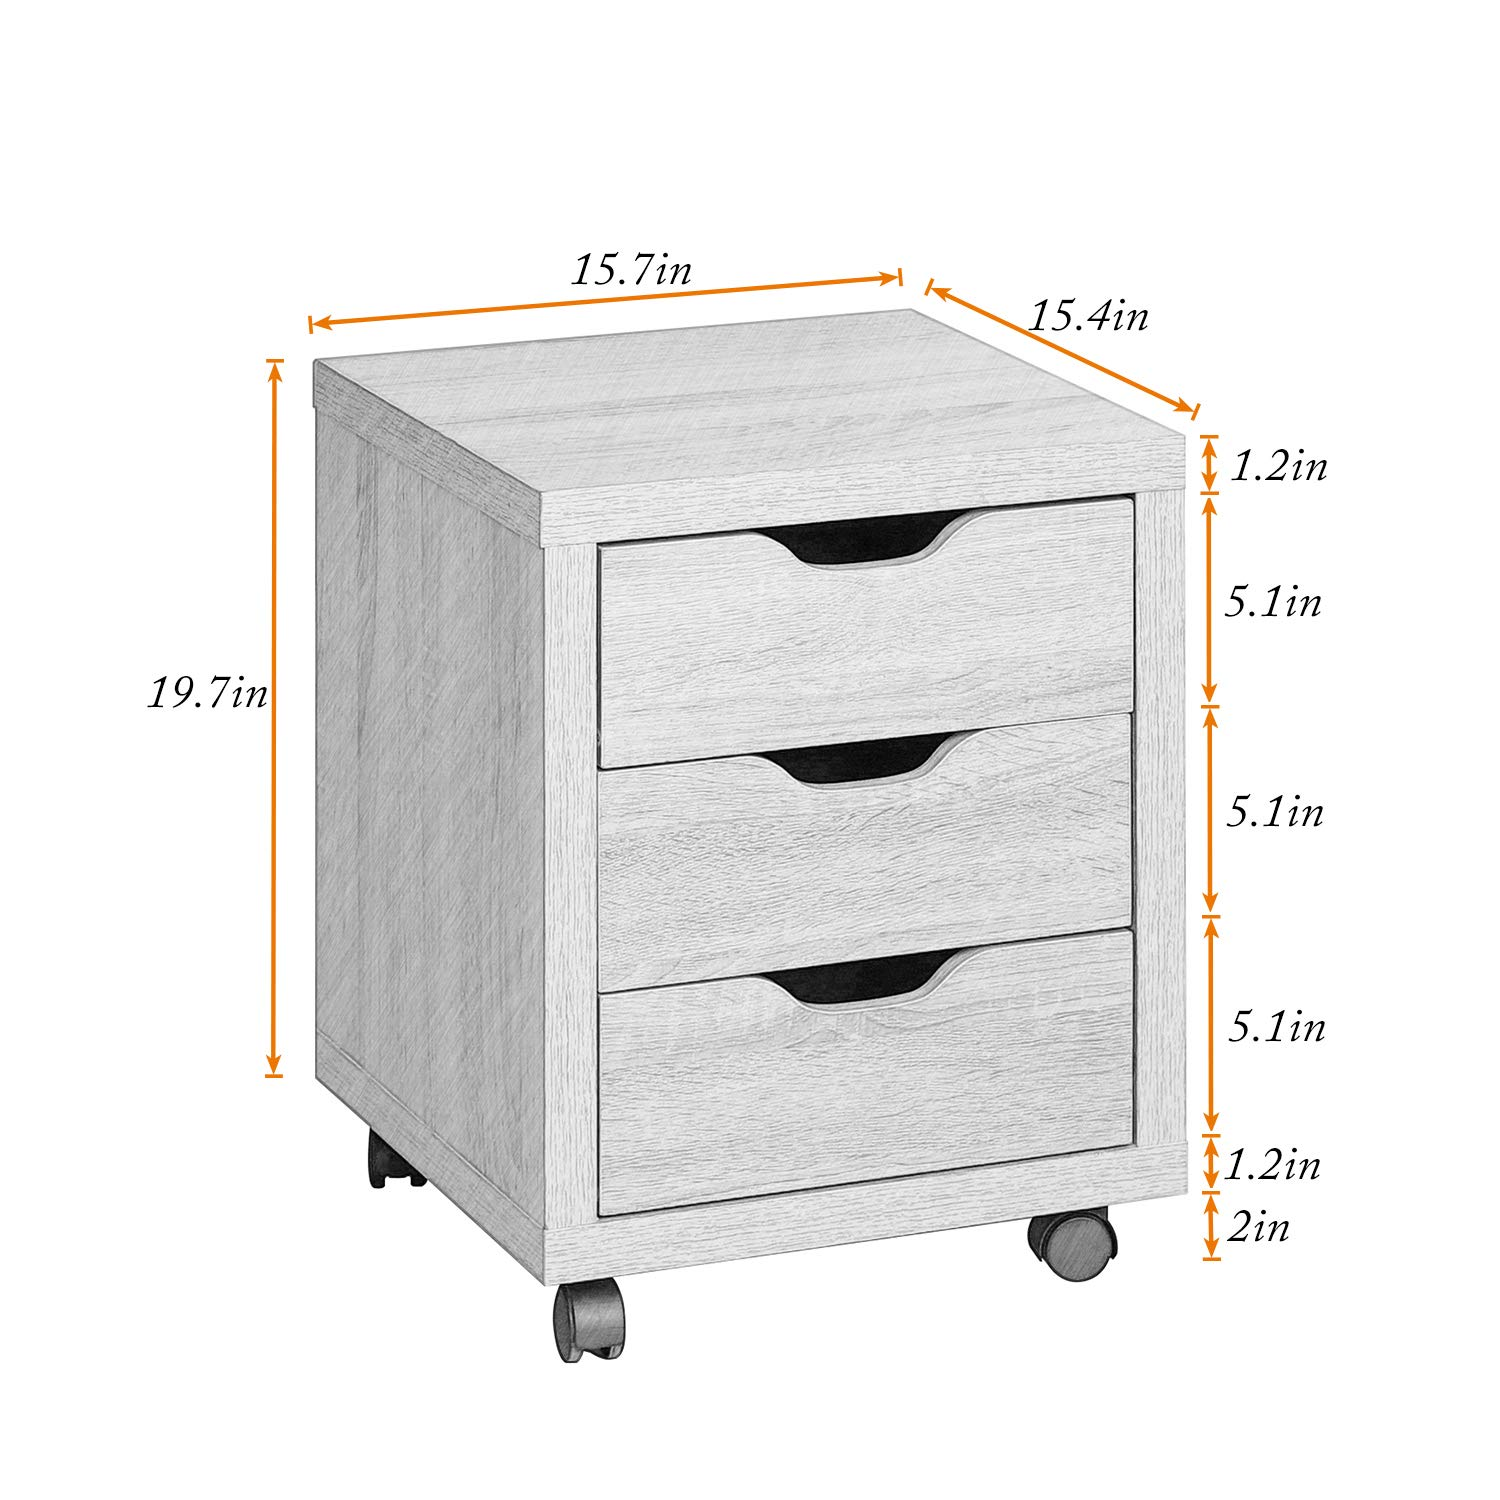 DlandHome Storage Cabinet, Vertical Lateral File Cabinet W/ 3 Drawers & Wheels, Wooden Bedroom Side Organizer for Home Office, LHGZ204-M Maple, 1 Pack by DlandHome (Image #4)